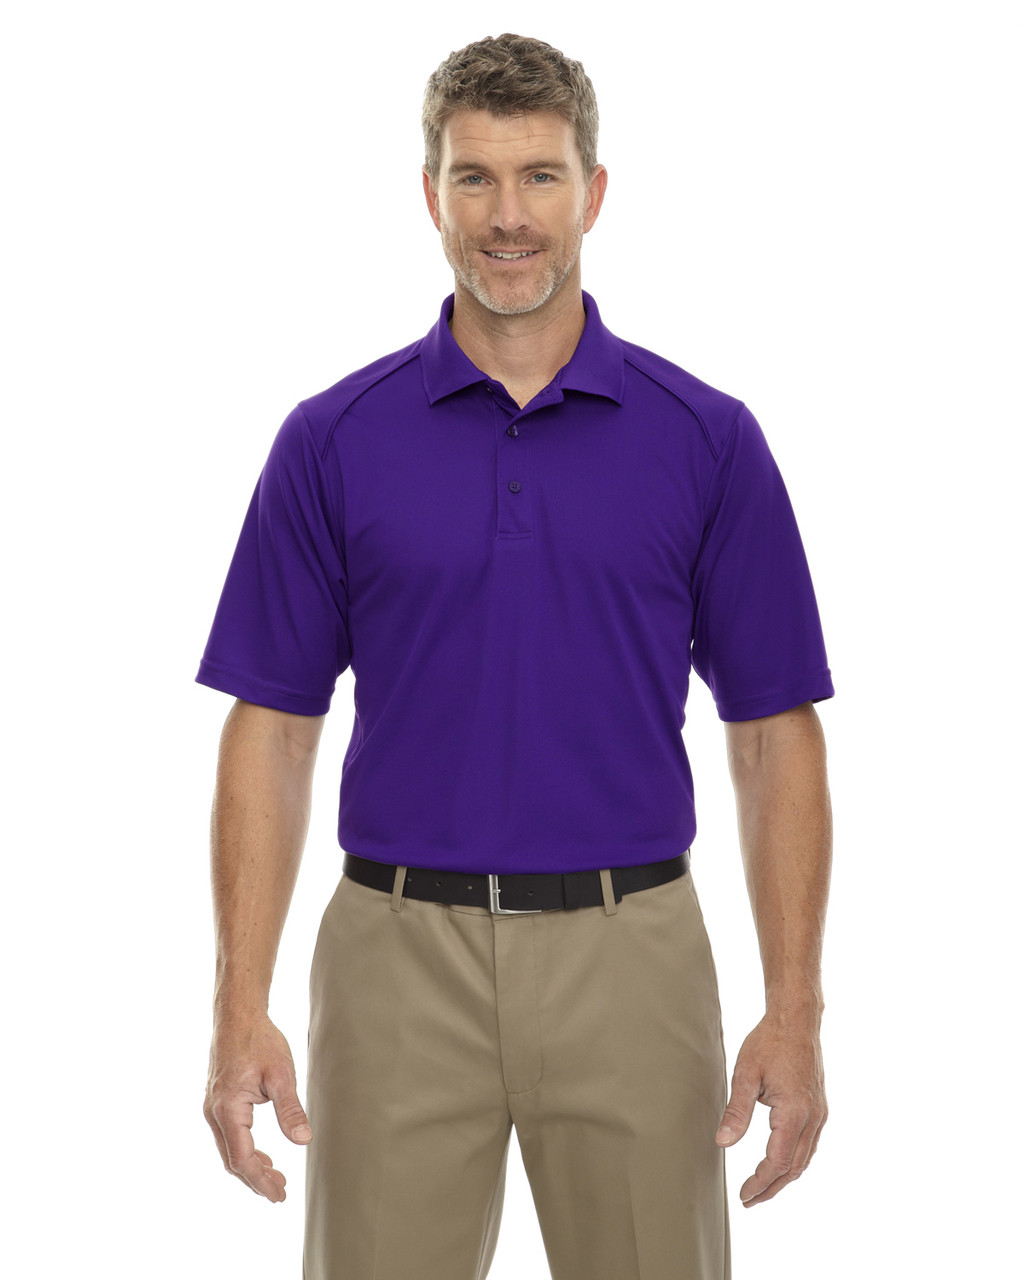 Campus Prple - 85108 Ash City - Extreme Eperformance Men's Shield Short-Sleeve Polo Shirt